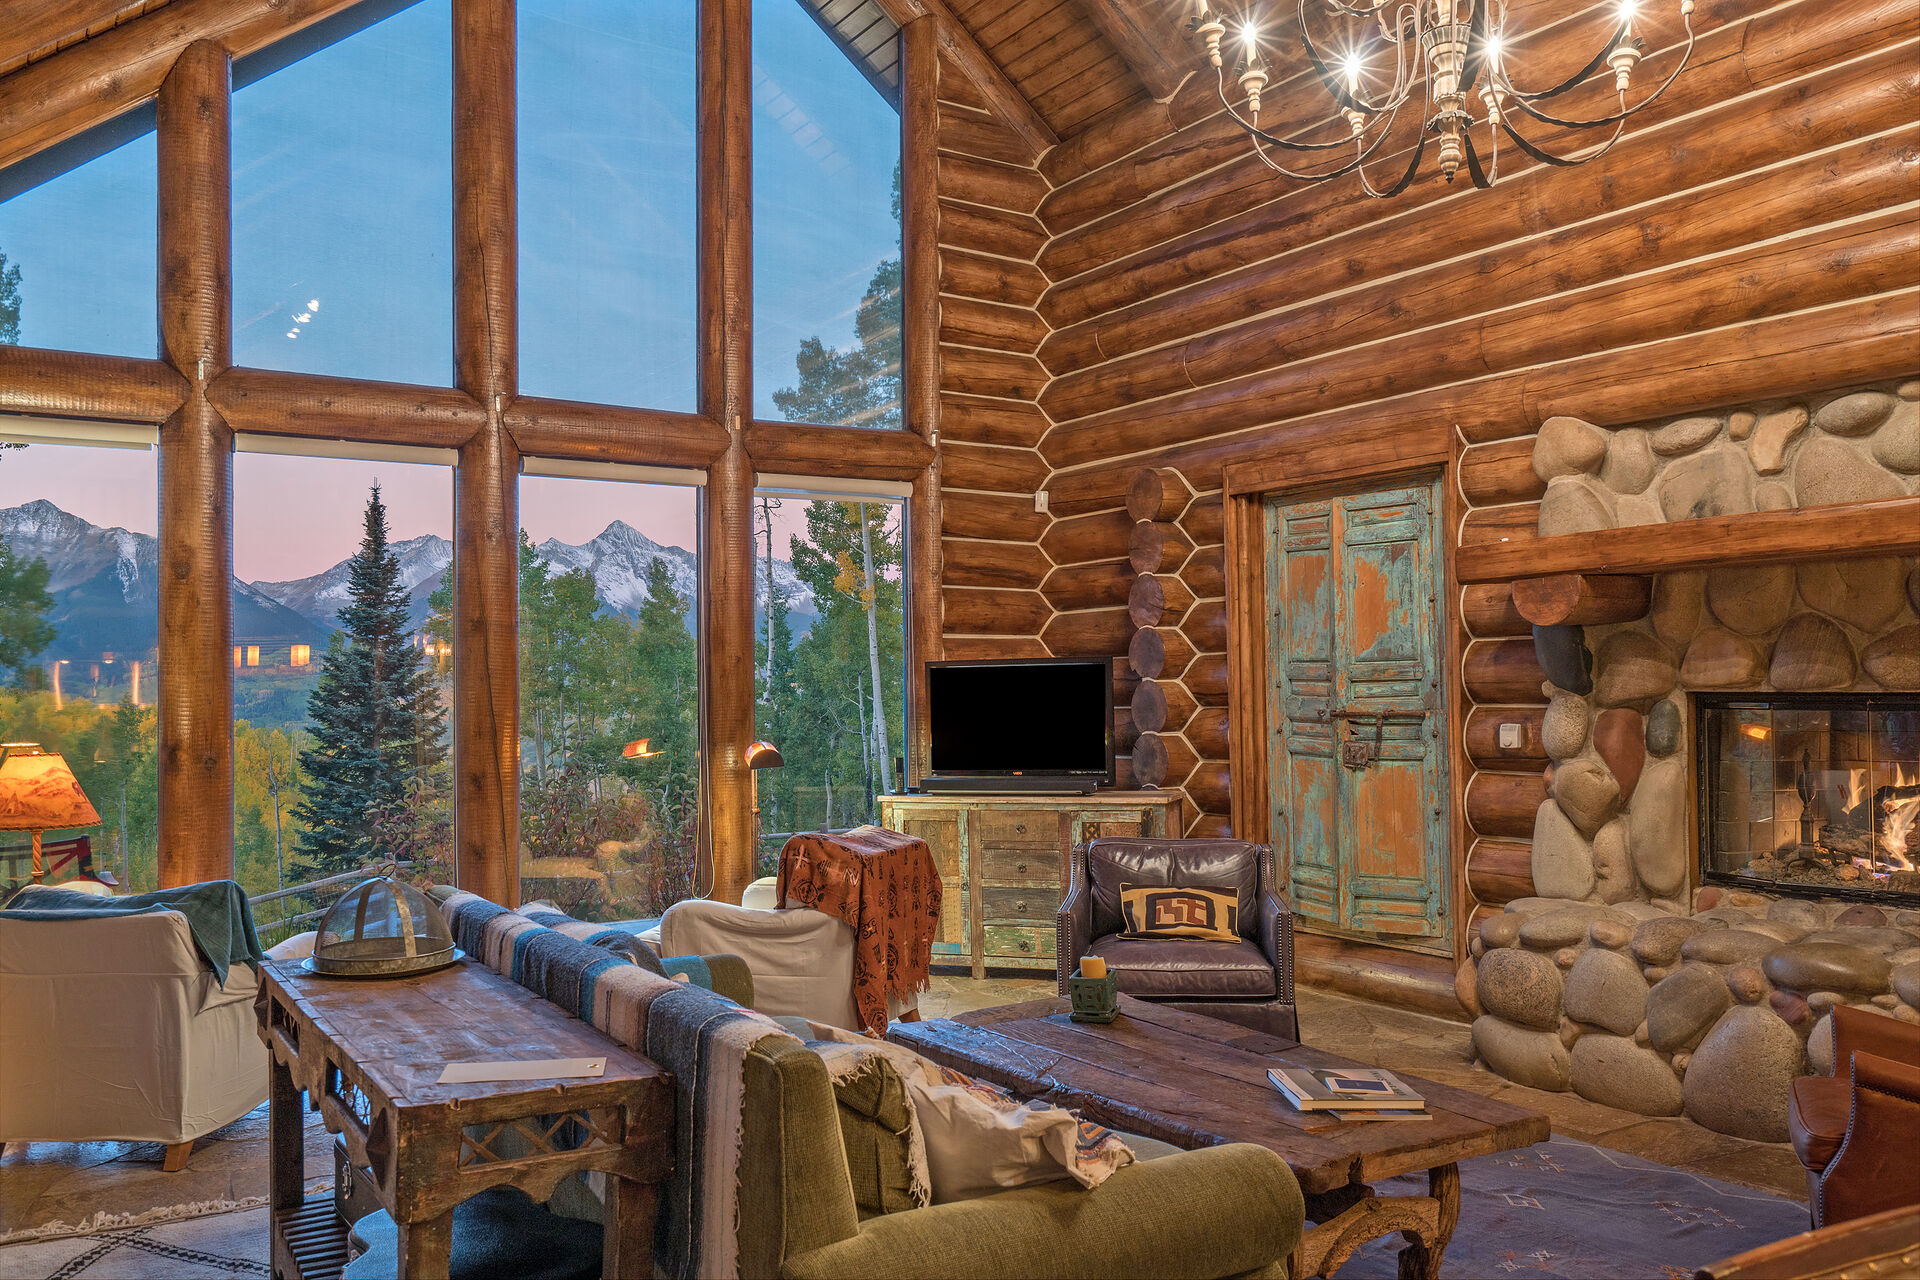 Large Windows with Views of the Forest and Mountains in the Living Area